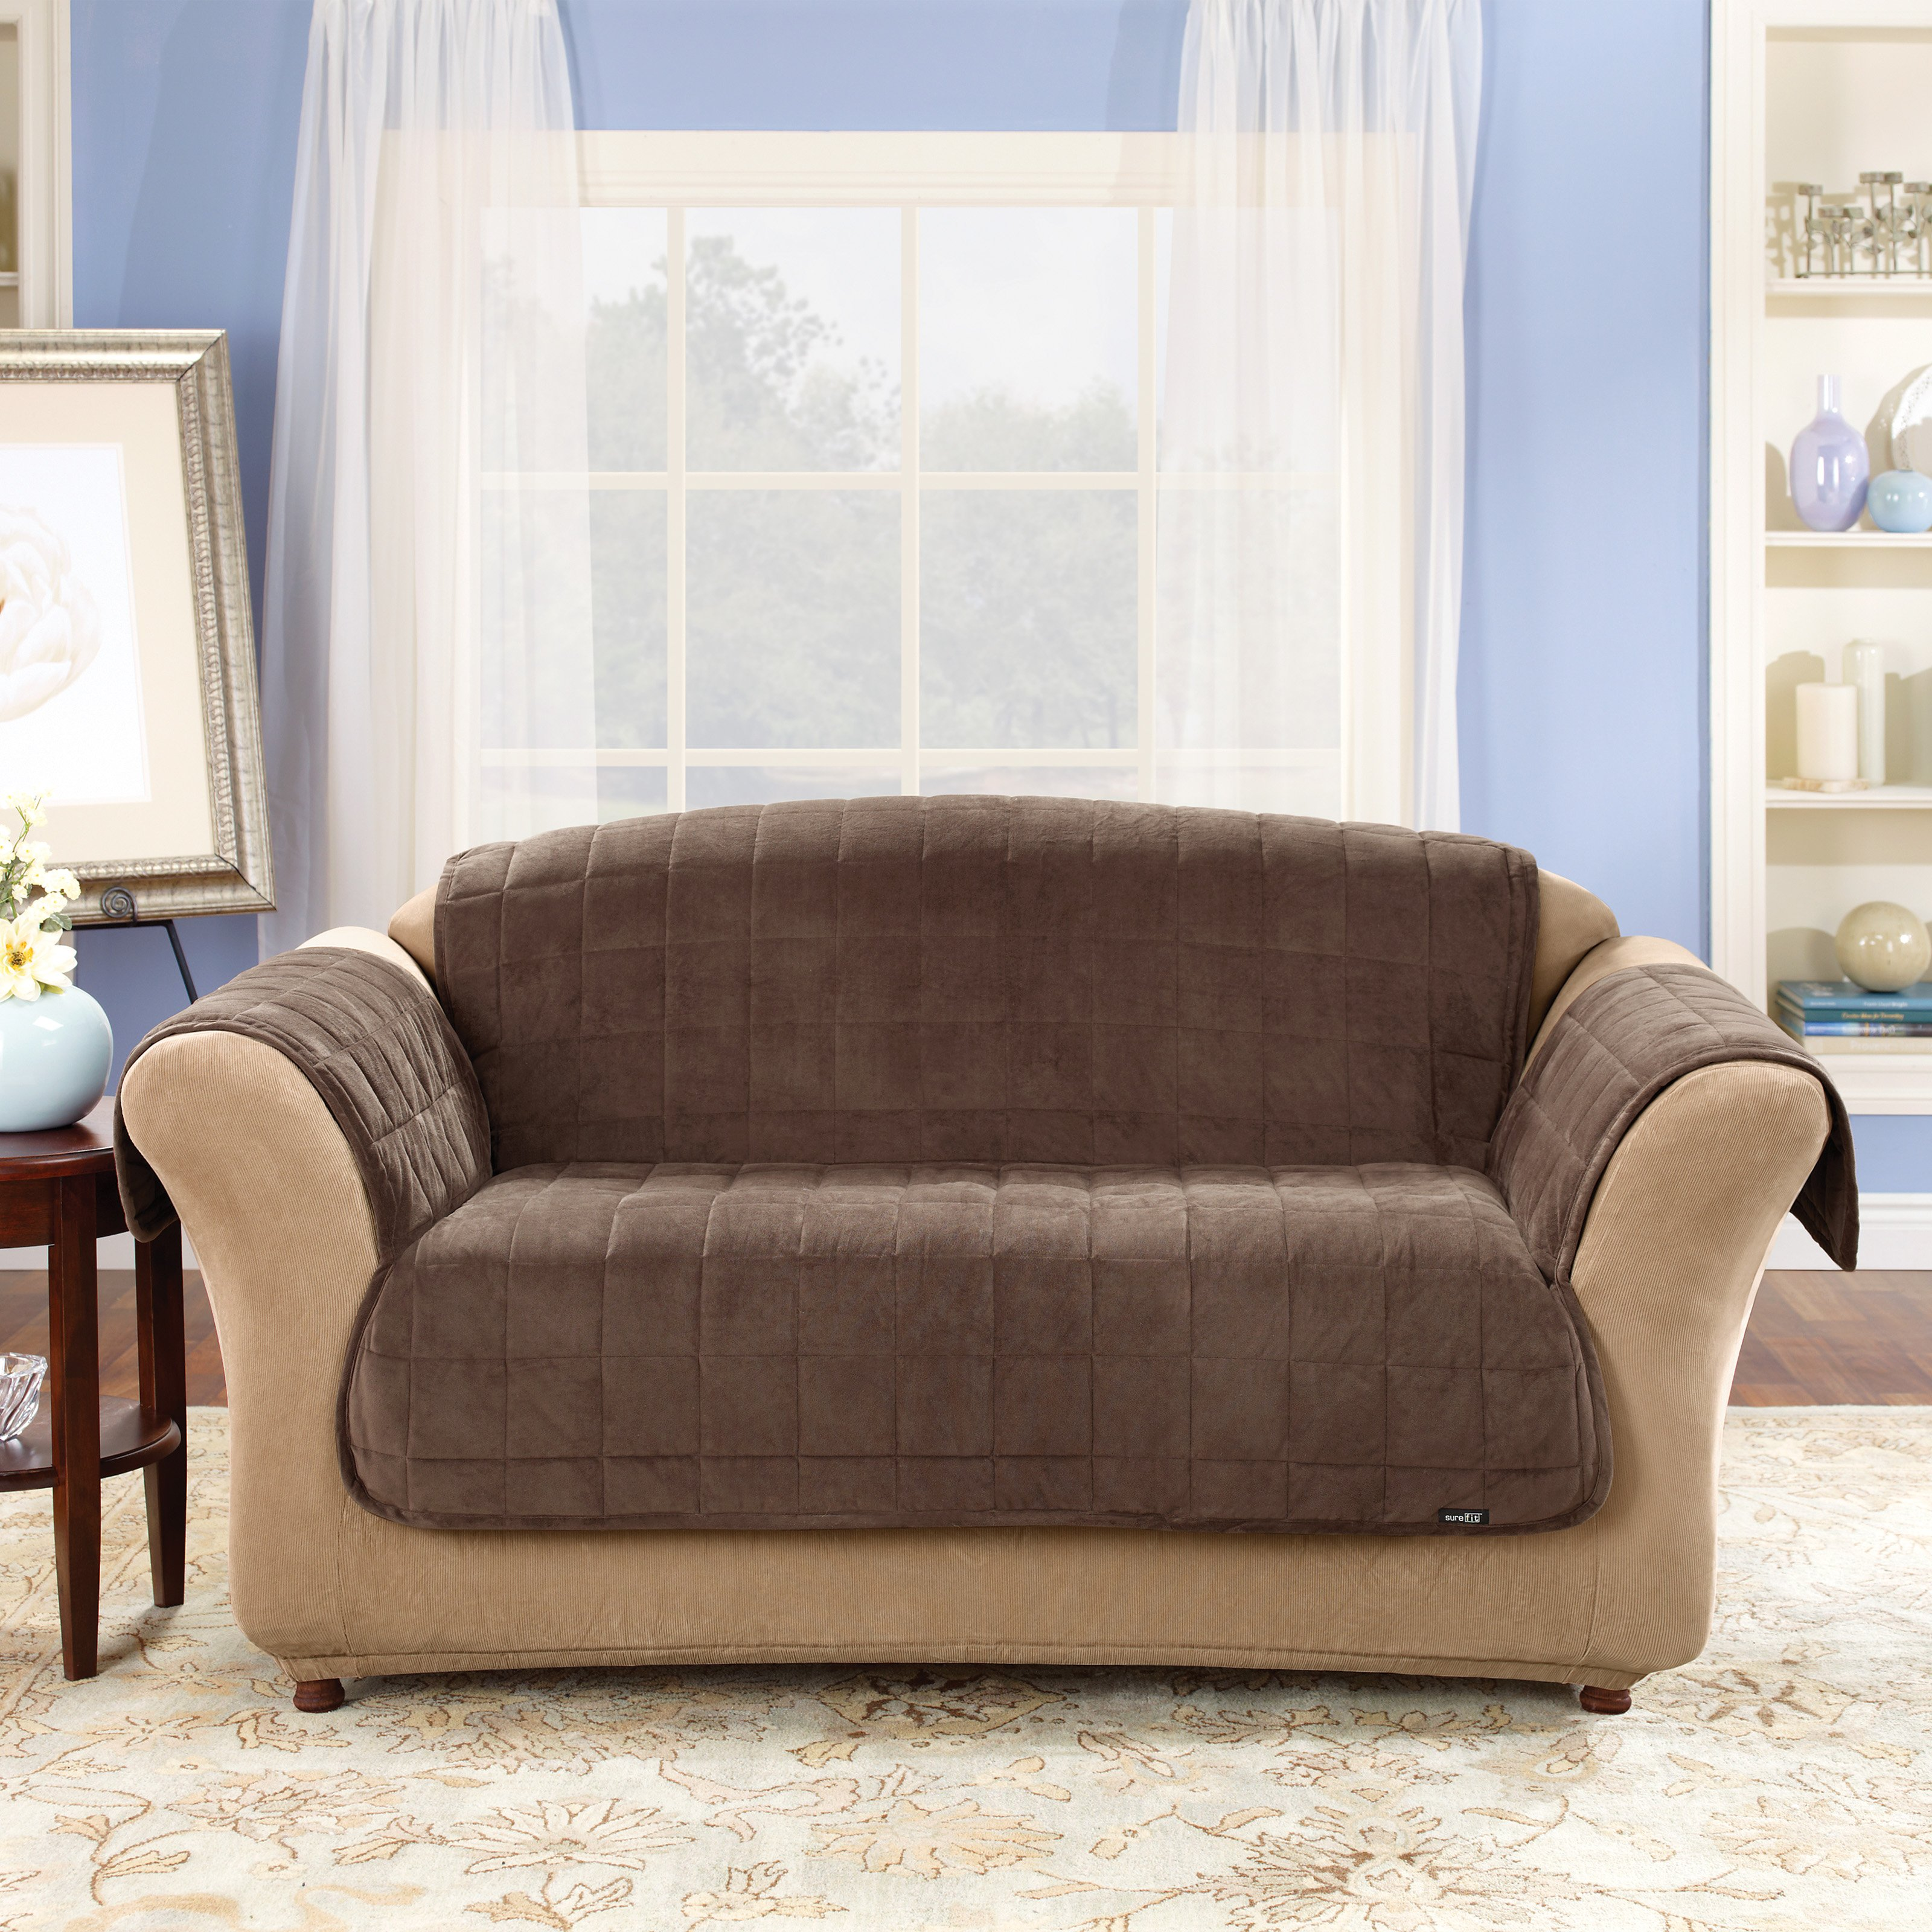 Slipcovers For Leather Couches Homesfeed